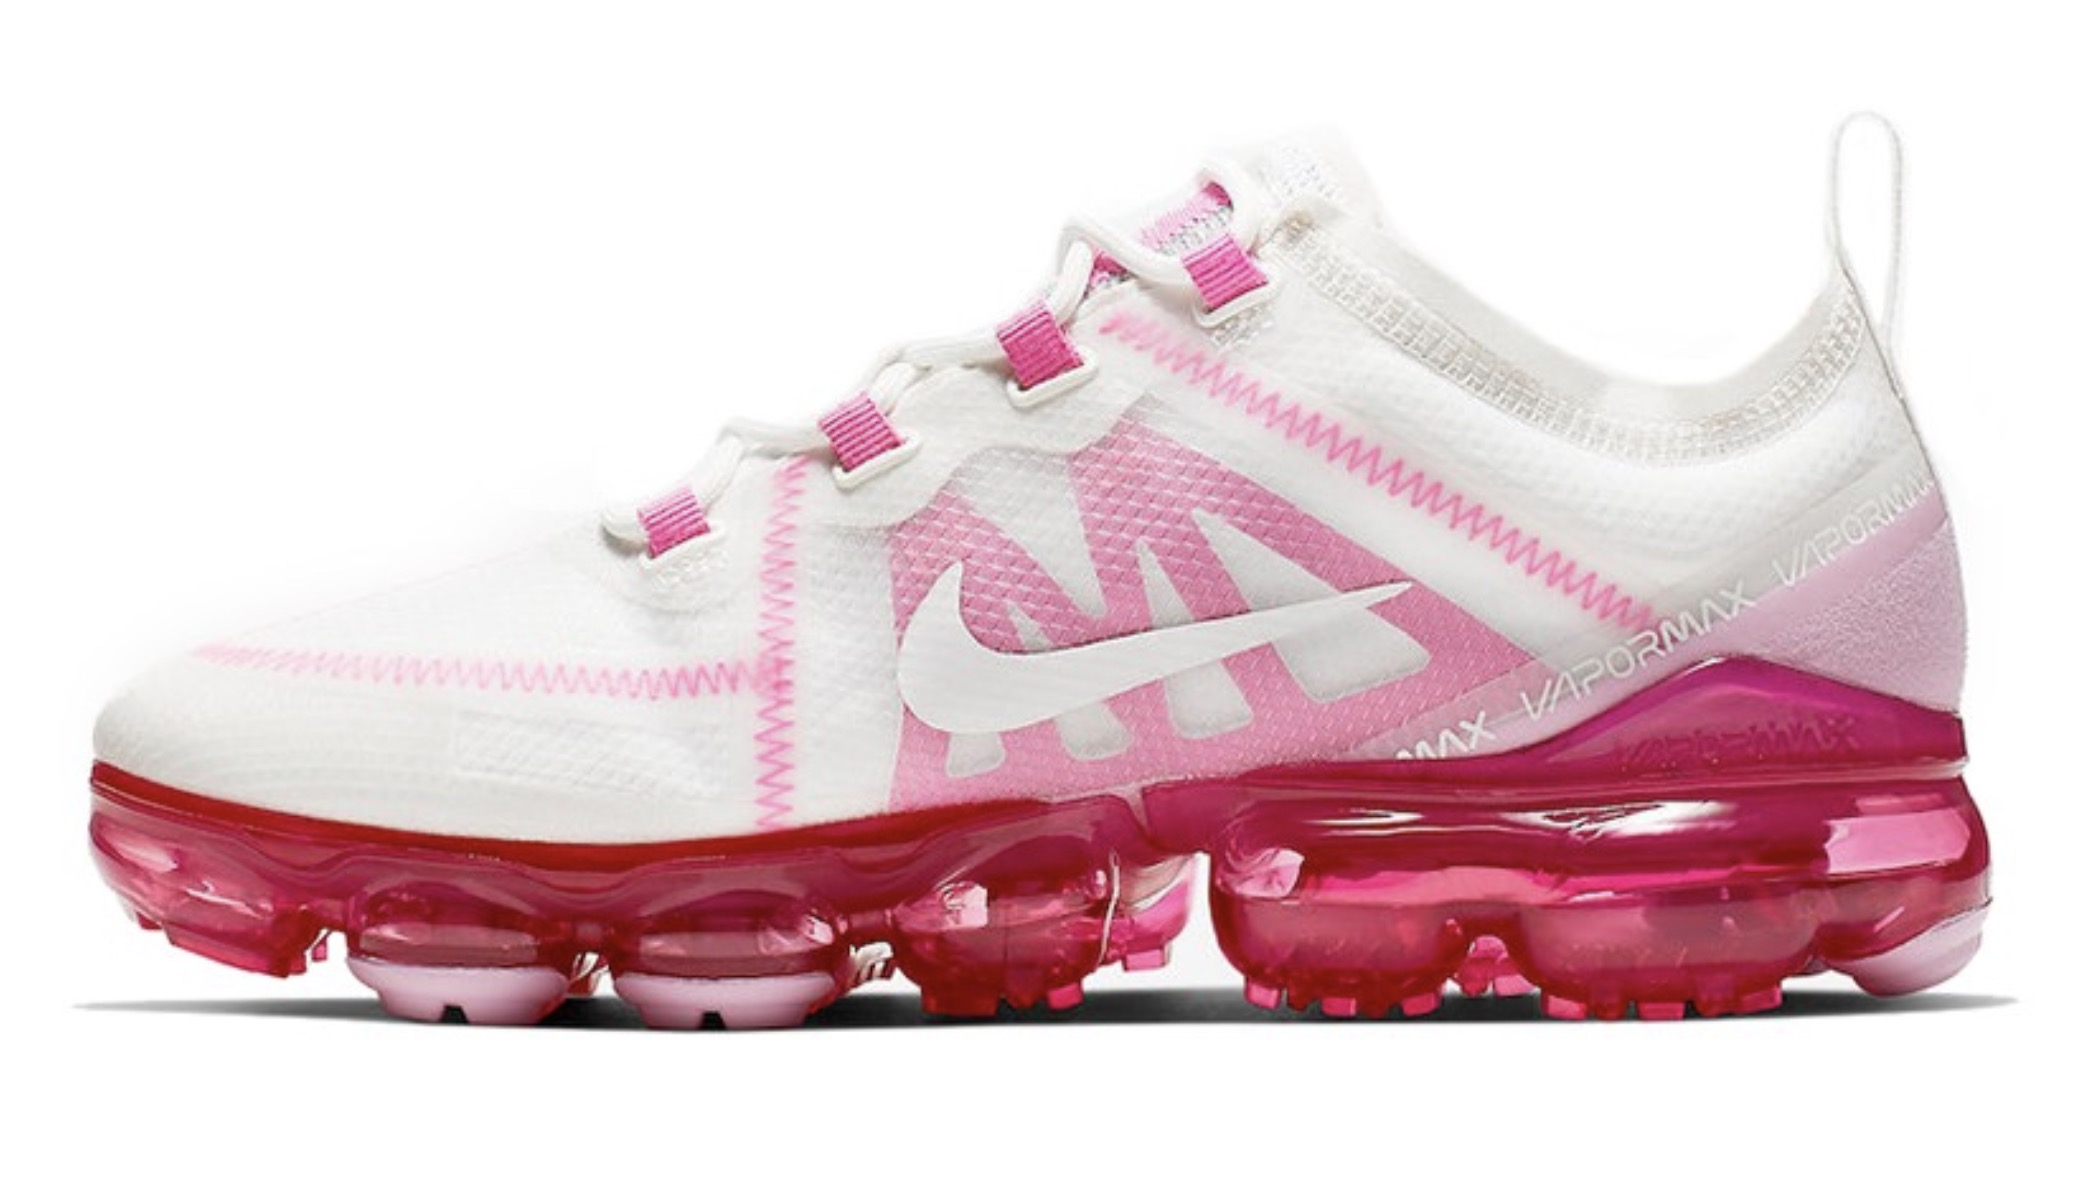 Nike's Upcoming Air VaporMax 2019 In 'Pink Rise' Is A Guaranteed Sell-Out